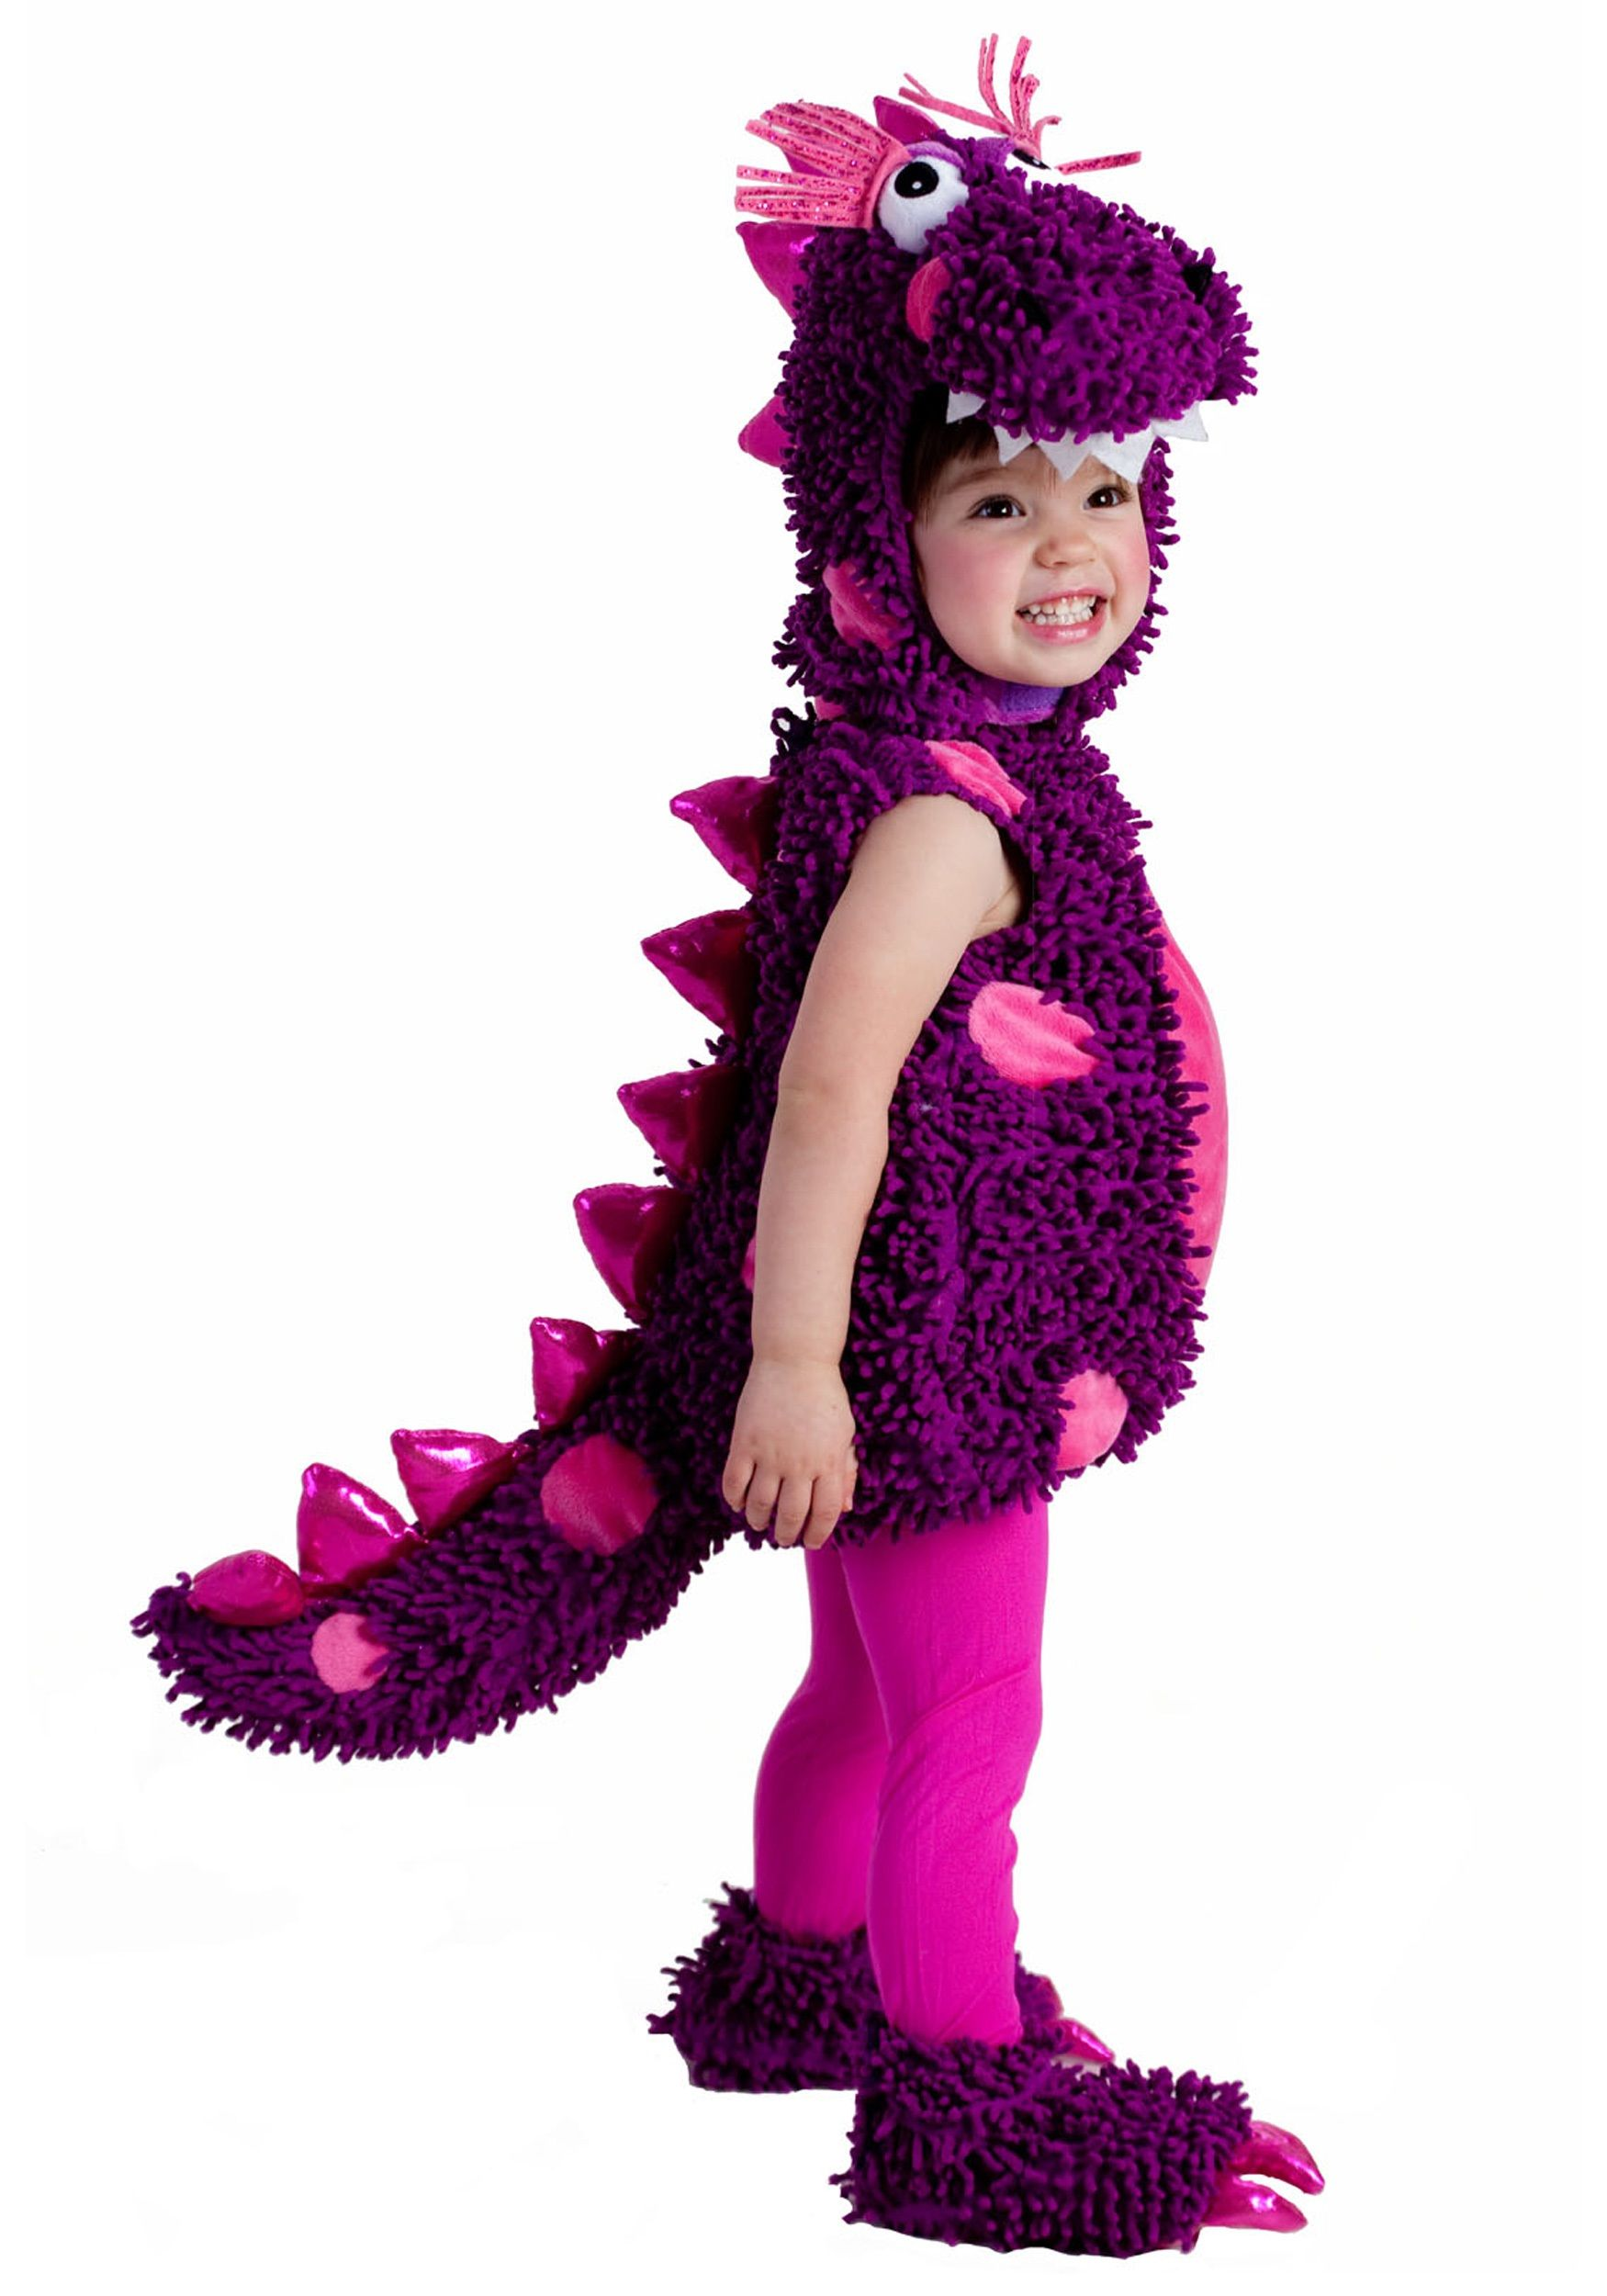 Paige the Dragon Toddler Costume | Bug costume, Toddler costumes ...